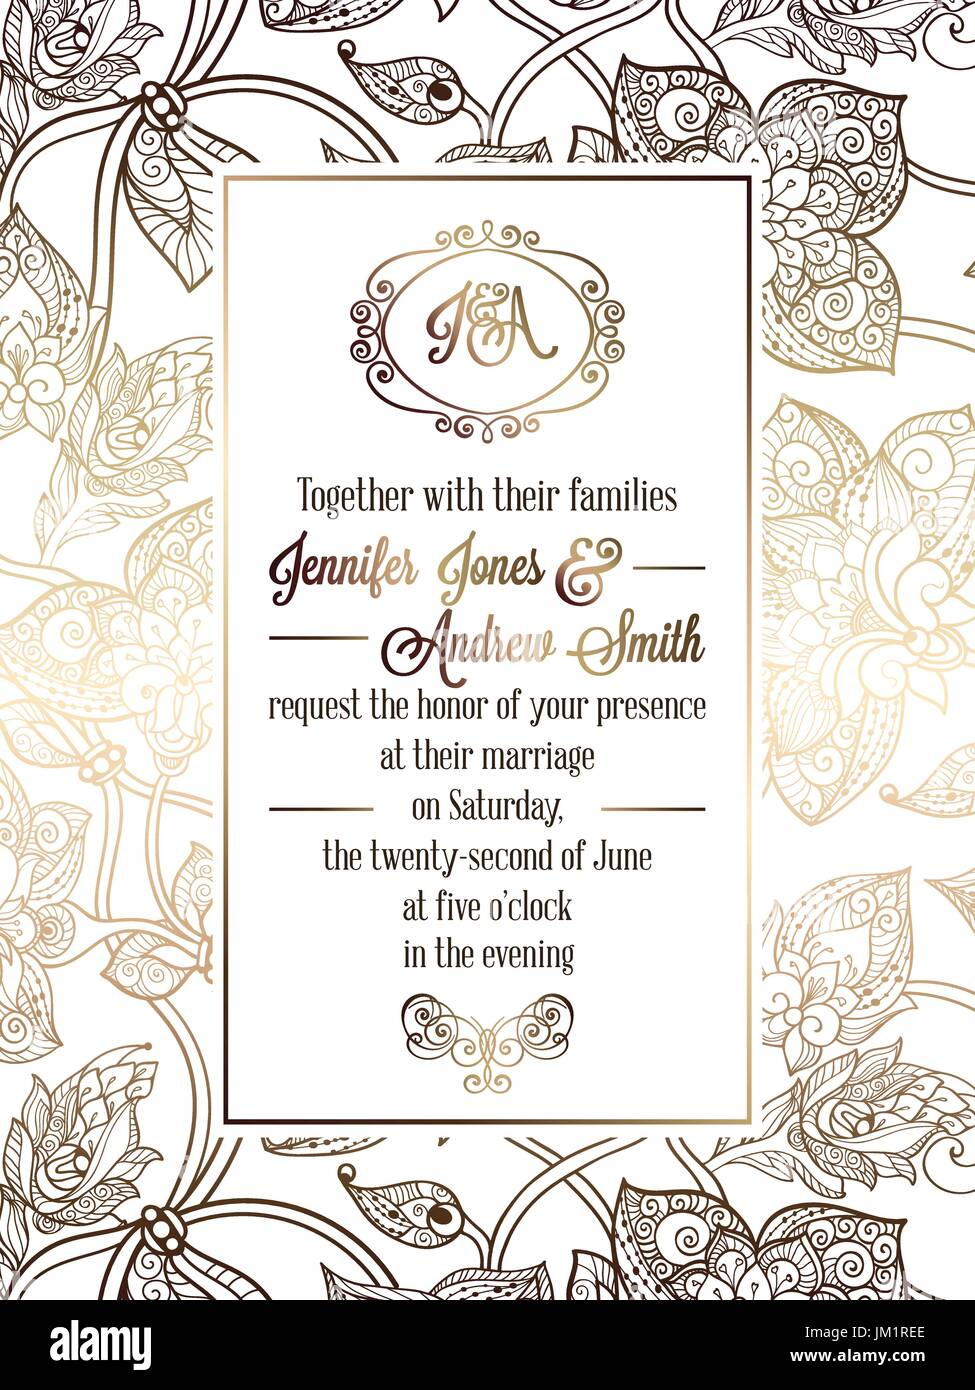 Vintage baroque style wedding invitation card template elegant vintage baroque style wedding invitation card template elegant formal design with damask background traditional decoration for wedding gold on whi junglespirit Image collections